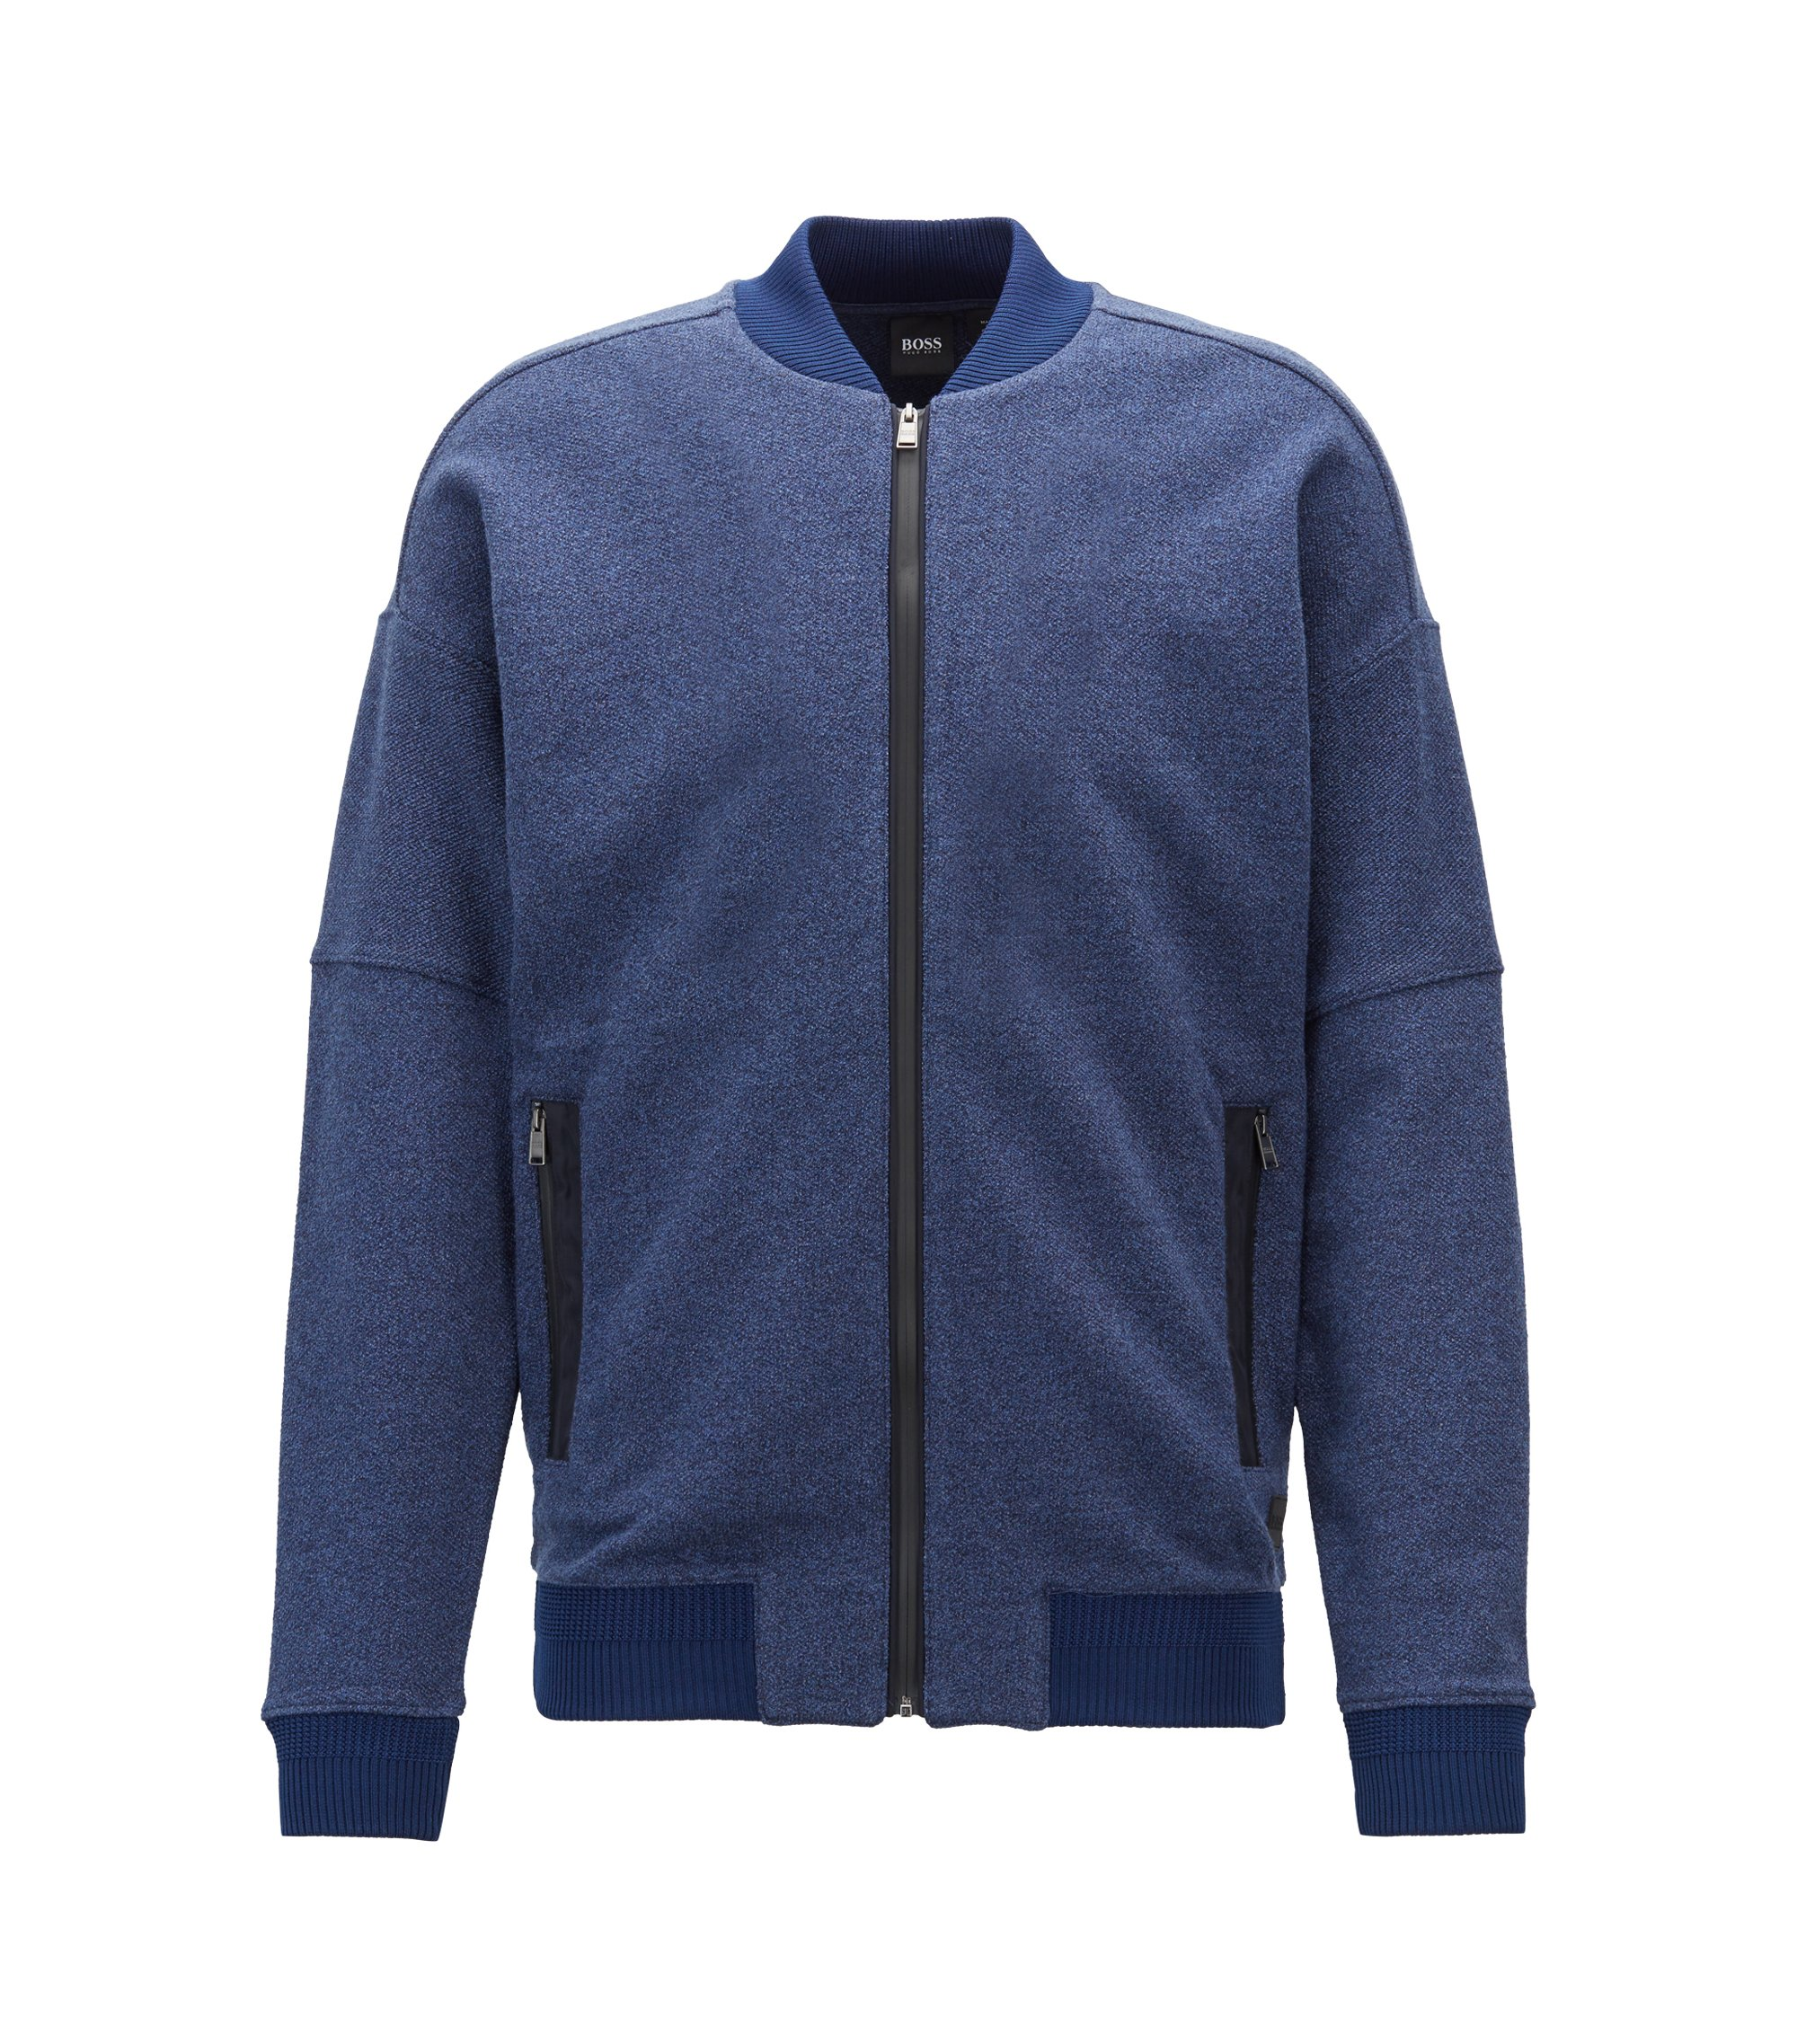 Sweatjacke aus meliertem Baumwoll-Terry in Denim-Optik, Blau